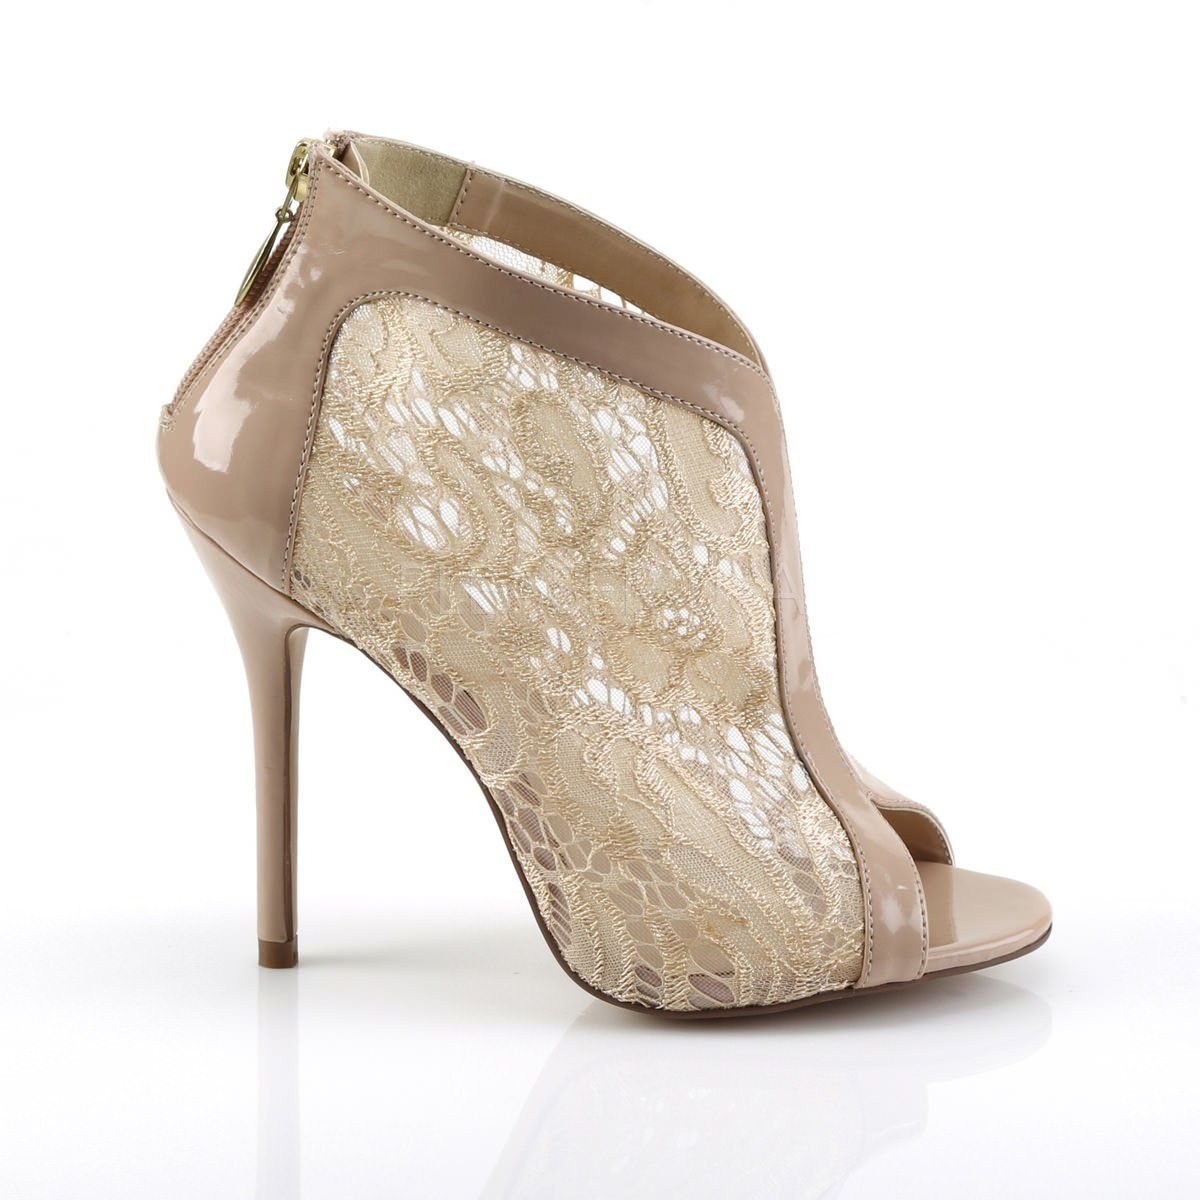 Amuse-48 Open Toe Bootie With Lace Overlay Patent Trim FABULICIOUS By Pleaser